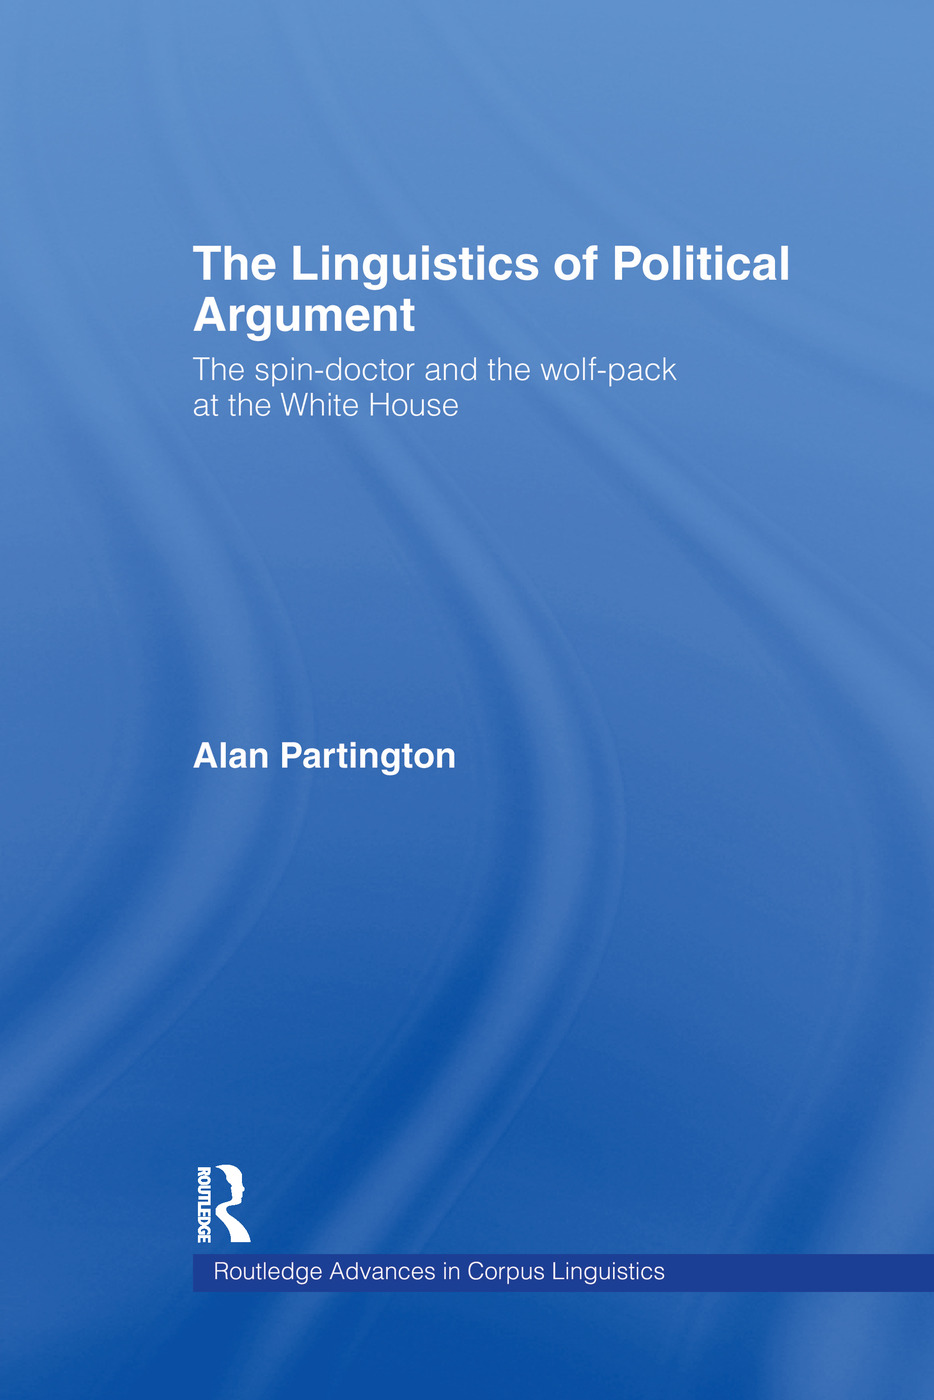 The Linguistics of Political Argument: The Spin-Doctor and the Wolf-Pack at the White House book cover